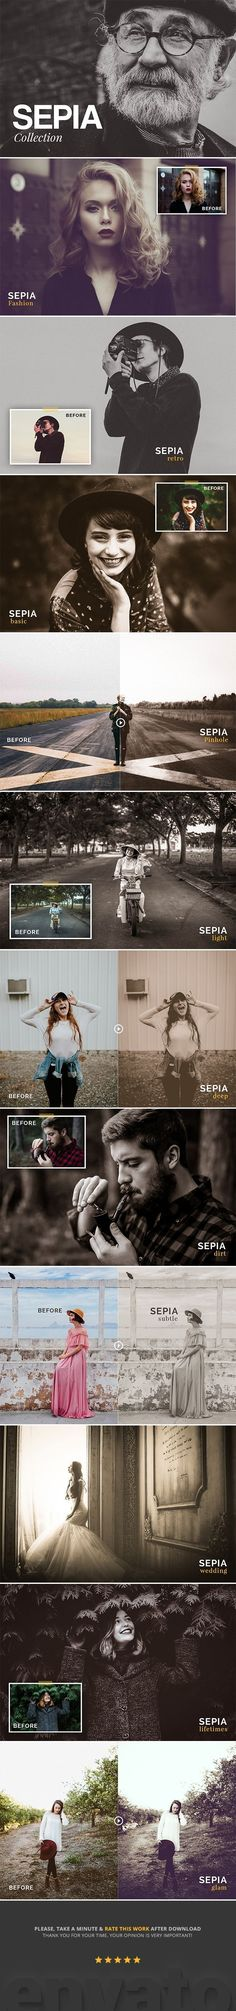 Sepia Collection Lightroom Presets by HYDROZi Sepia Presets is a collection of old-style sepia presets for Adobe Lightroom that helps photographers to make their photos emotion